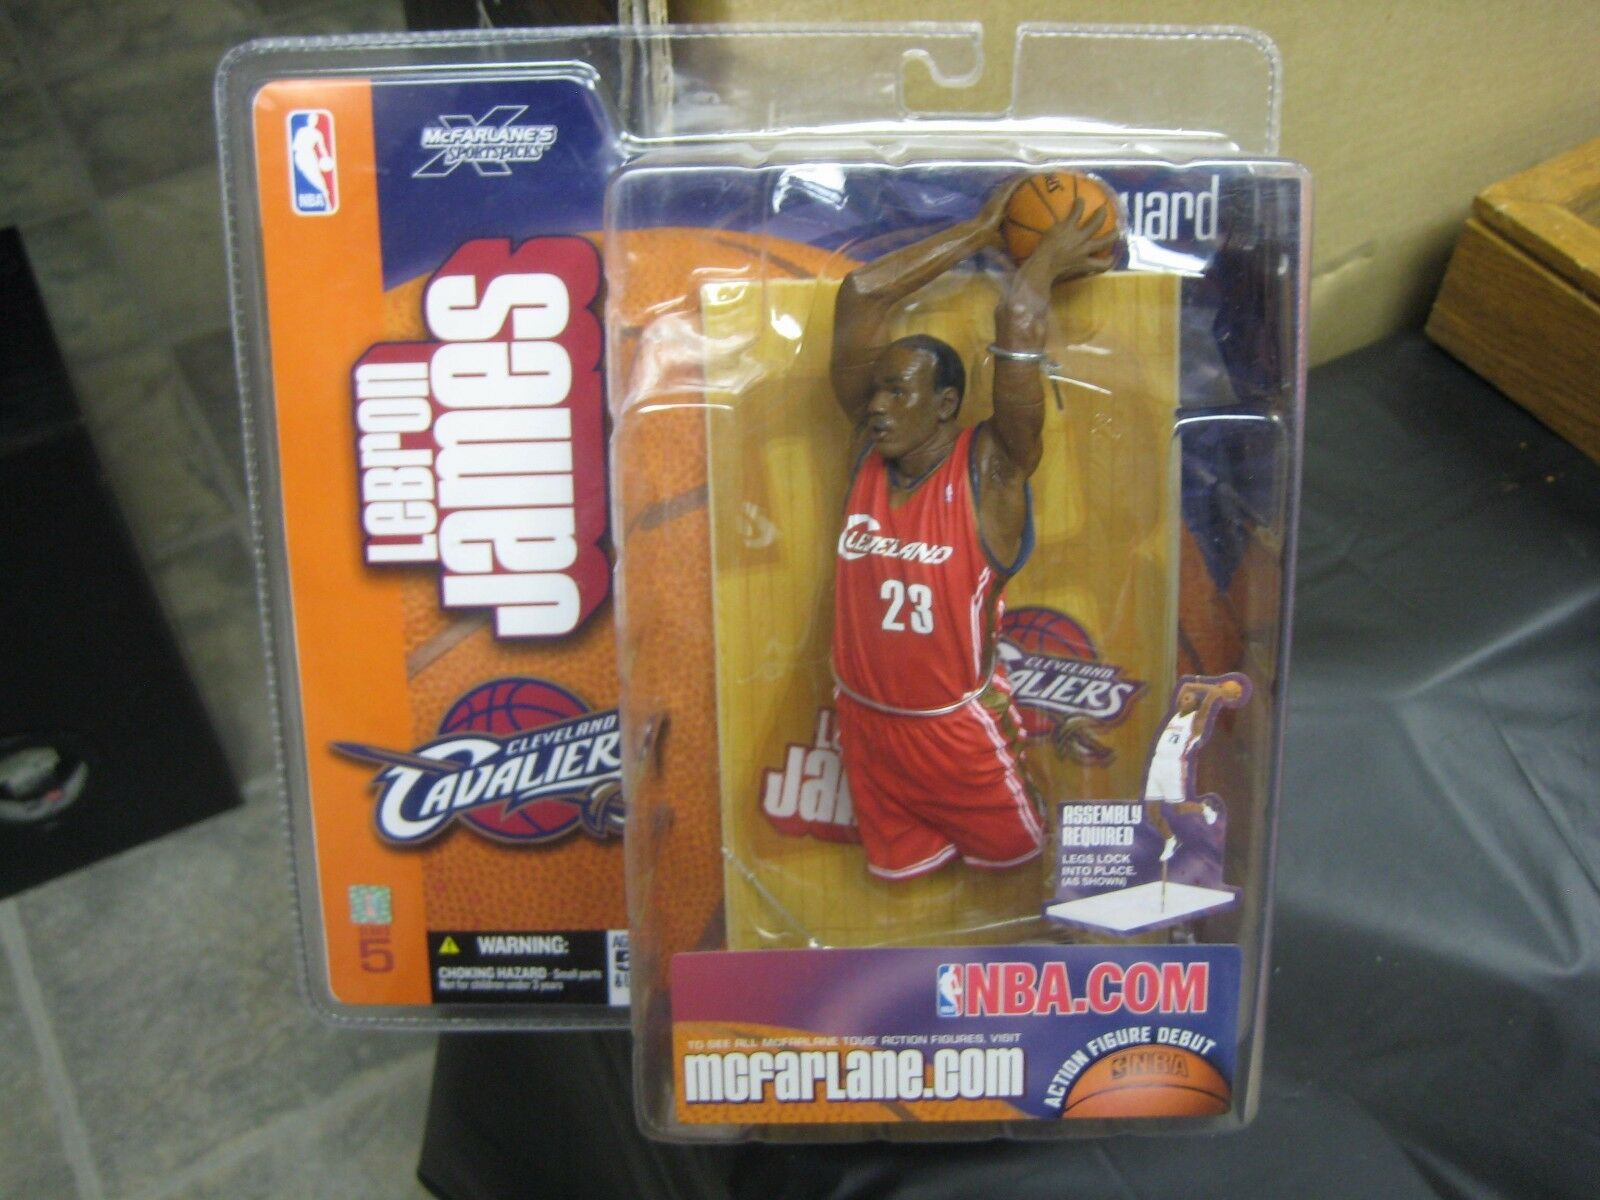 McFARLANE - Lebron James - Rookie Red Jersey Chase figure